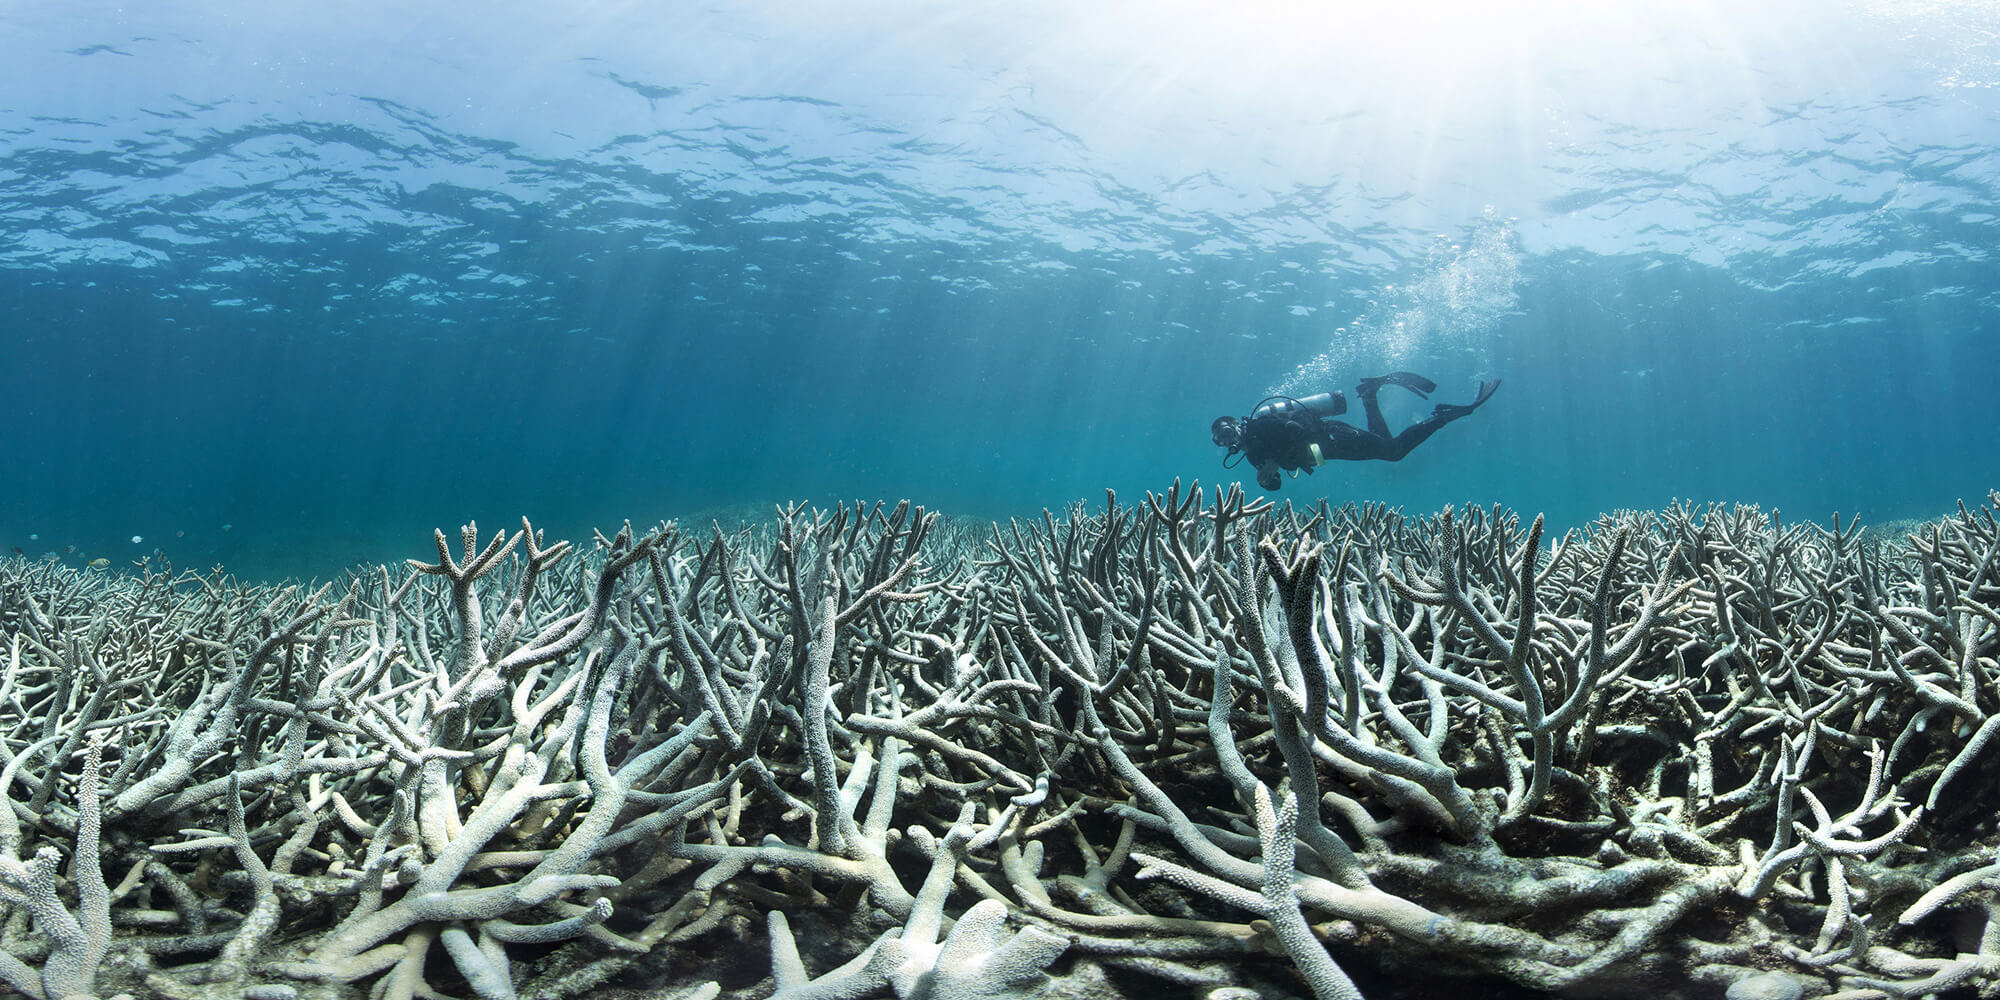 Image Source:   https://www.marineconservation.org.au/coral-bleaching/